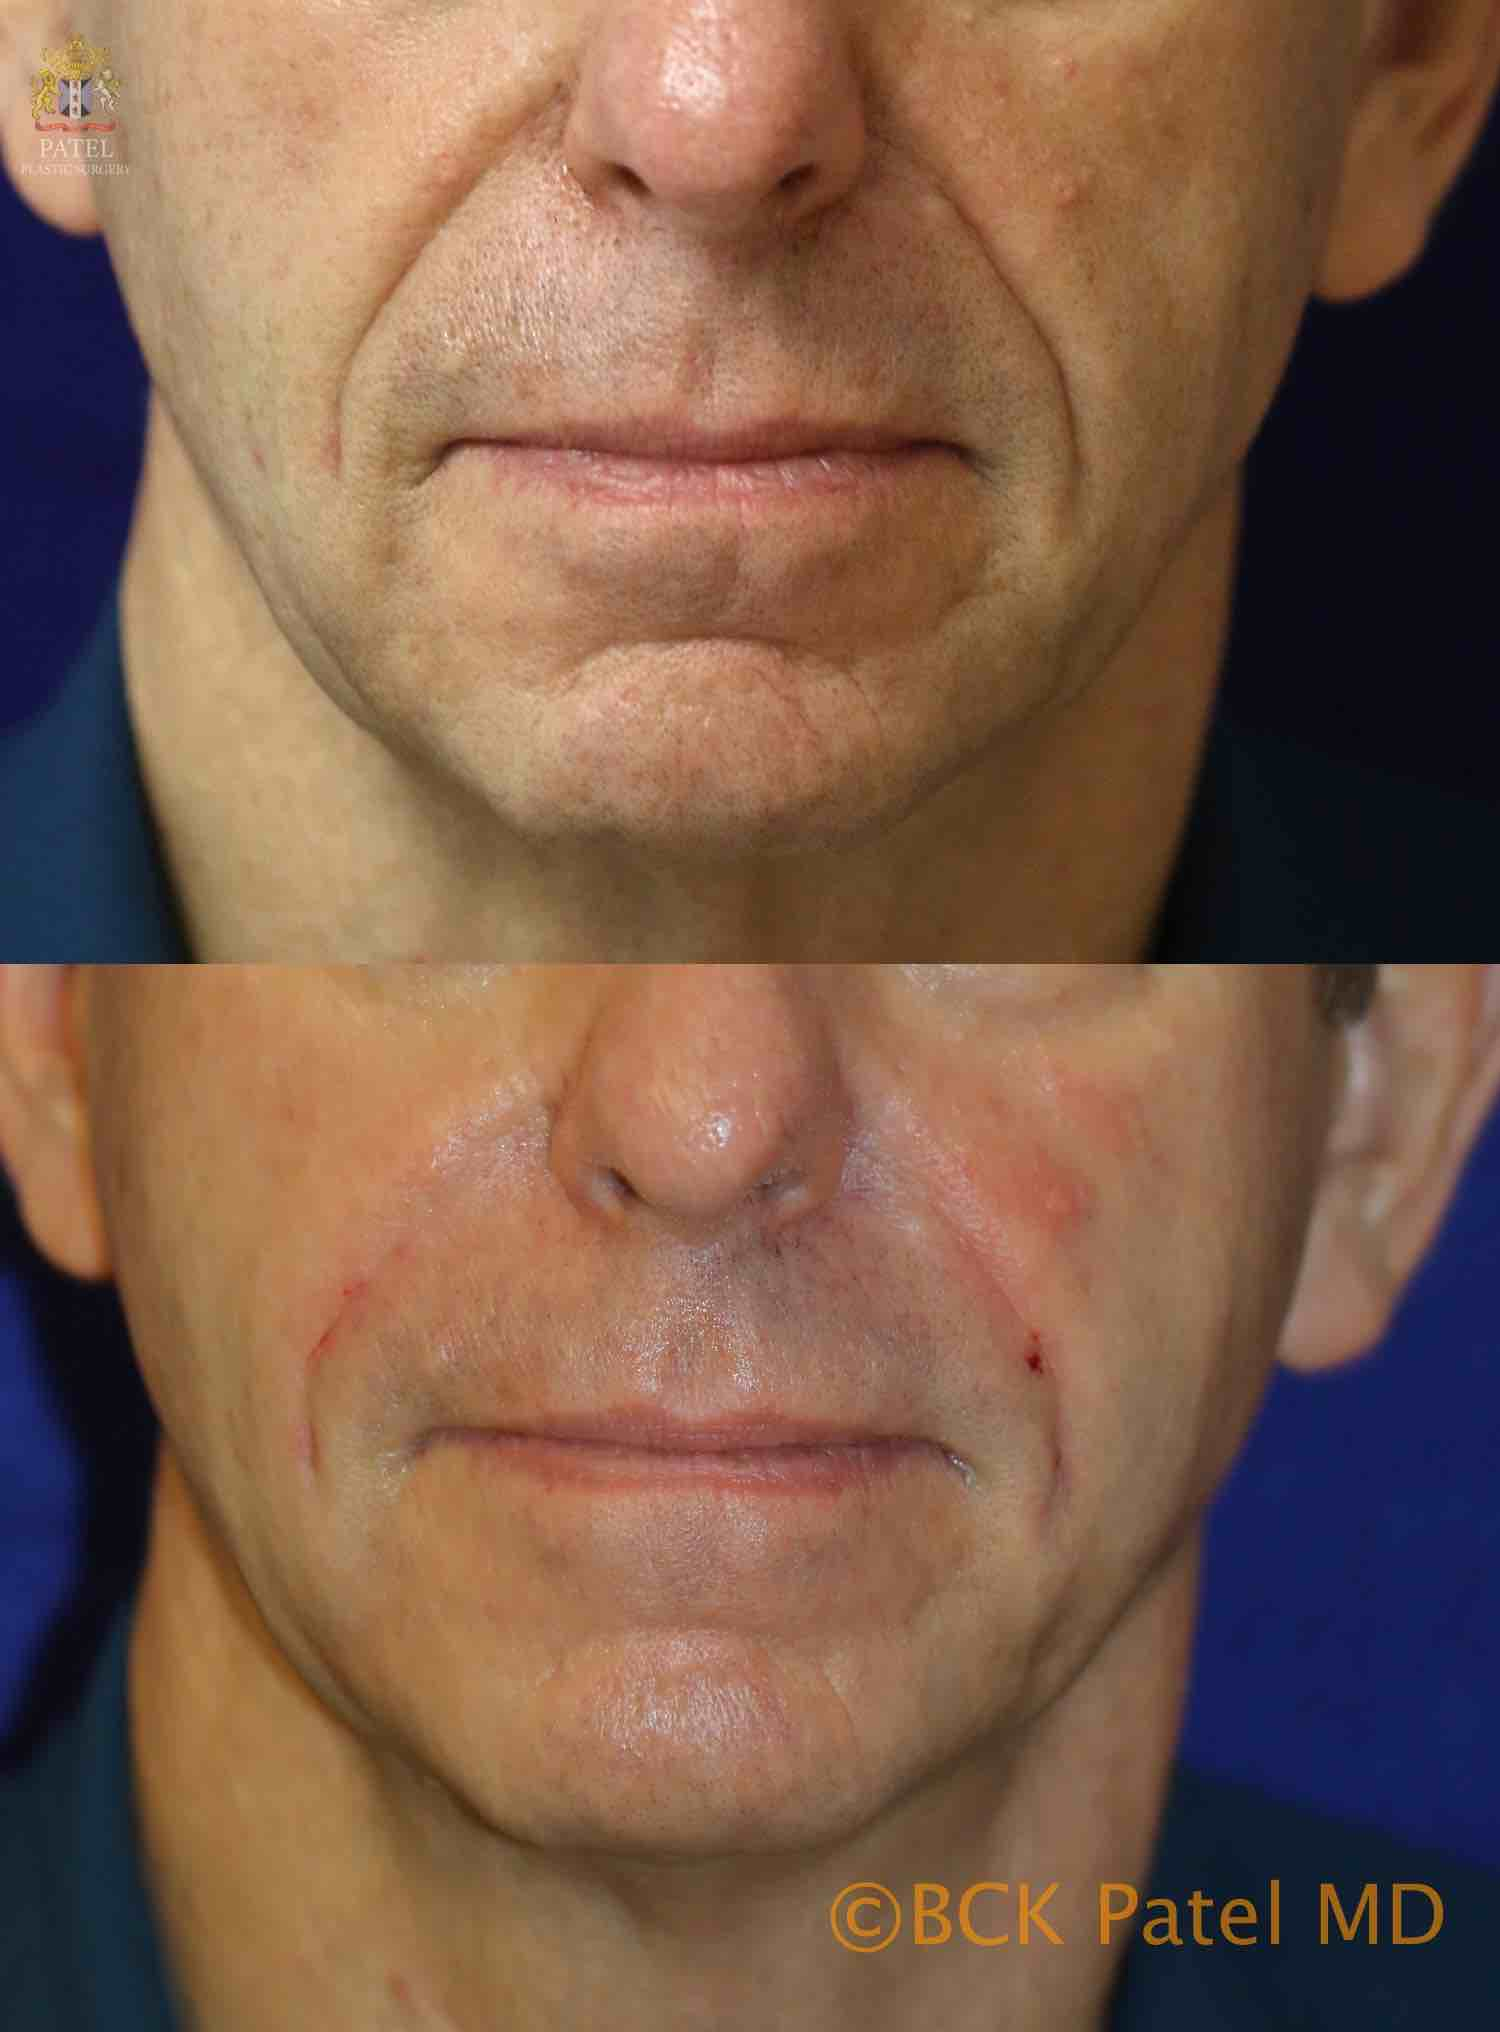 englishsurgeon.com. Photos showing improvement in the nasolabial folds and cheeks. BCK Patel MD, FRCS